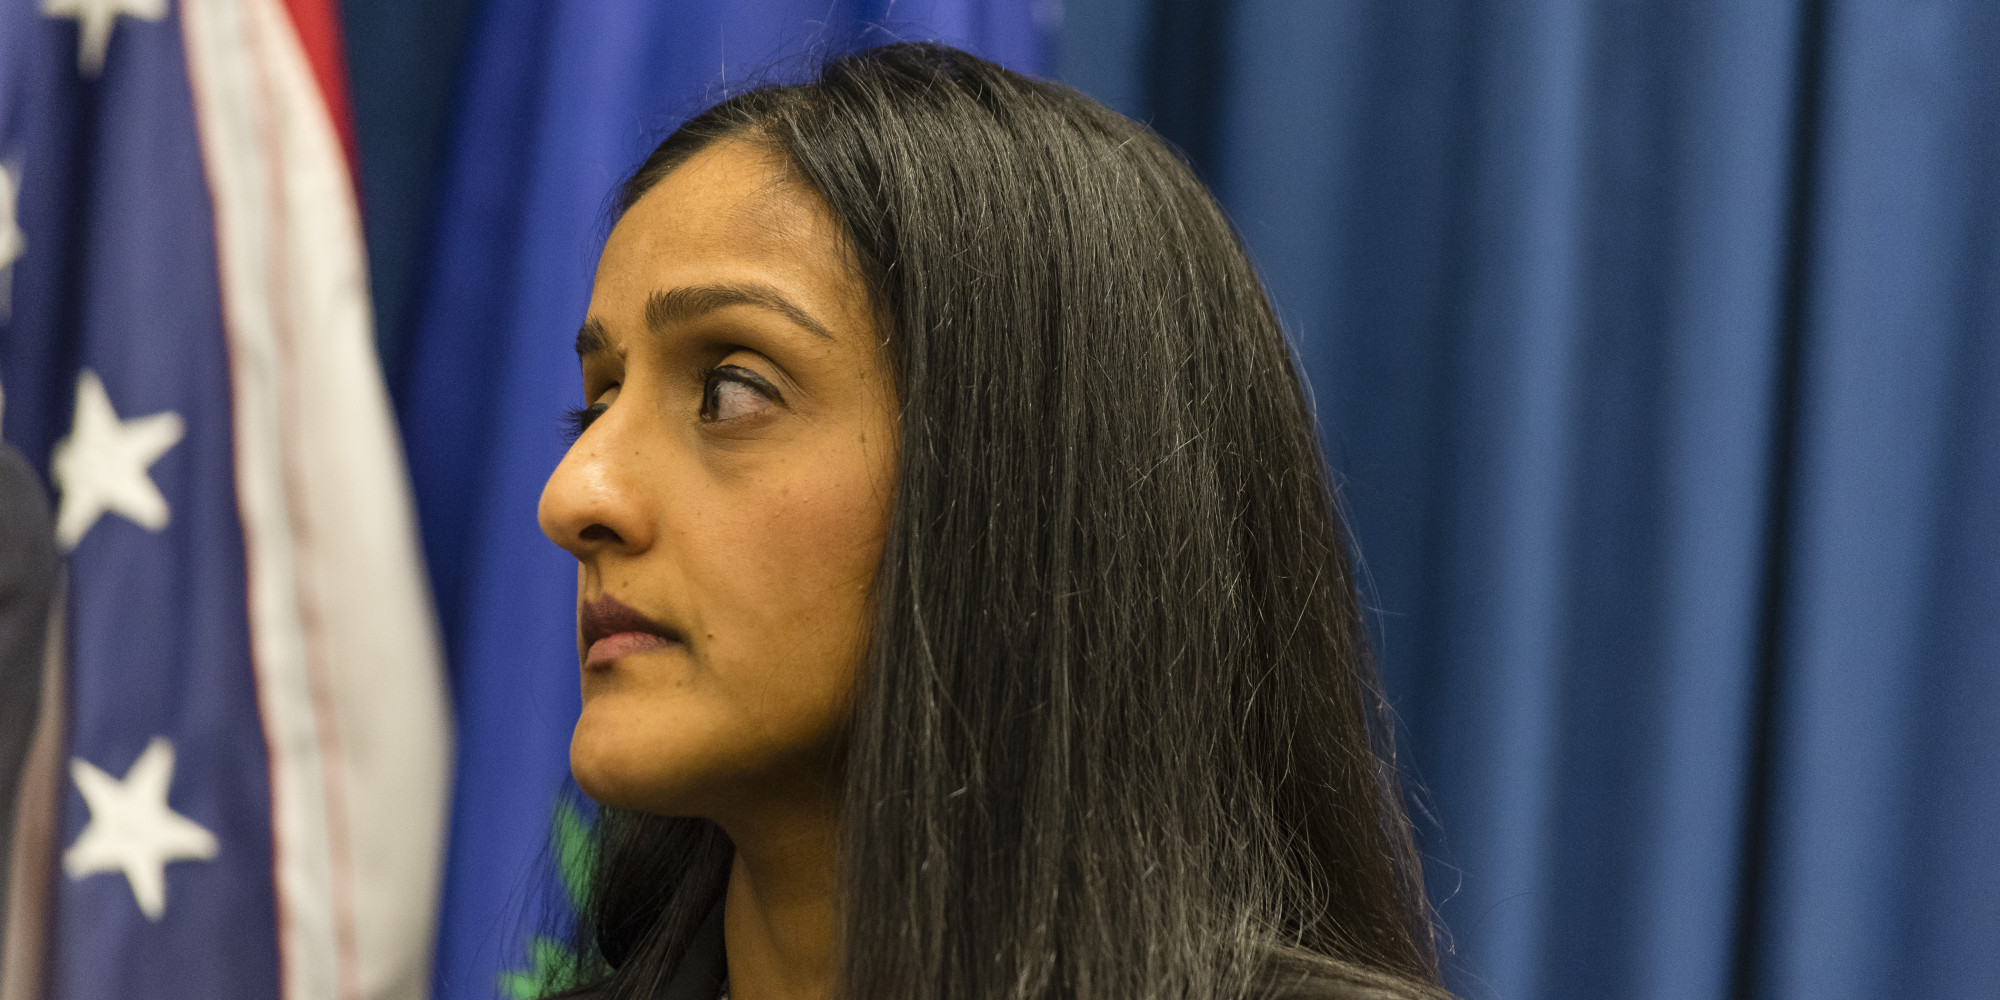 CLEVELAND, OH- DECEMBER 4: U.S. Acting Assistant Attorney General EVanita Gupta listens as U.S. Attorney Steve Dettlebach speaks to reporters at a press conference on December 4, 2014 oin Cleveland, Ohio. U.S. Attorney General Eric Holder, Acting Assistant Attorney General Vanita Gupta, and U.S. Attorney Steven Dettelbach spoke at the press conference before hosting a community roundtable discussion as part of the Justice Department's 'Building Community Trust' initiative.  (Photo by Angelo Merendino/Getty Images)